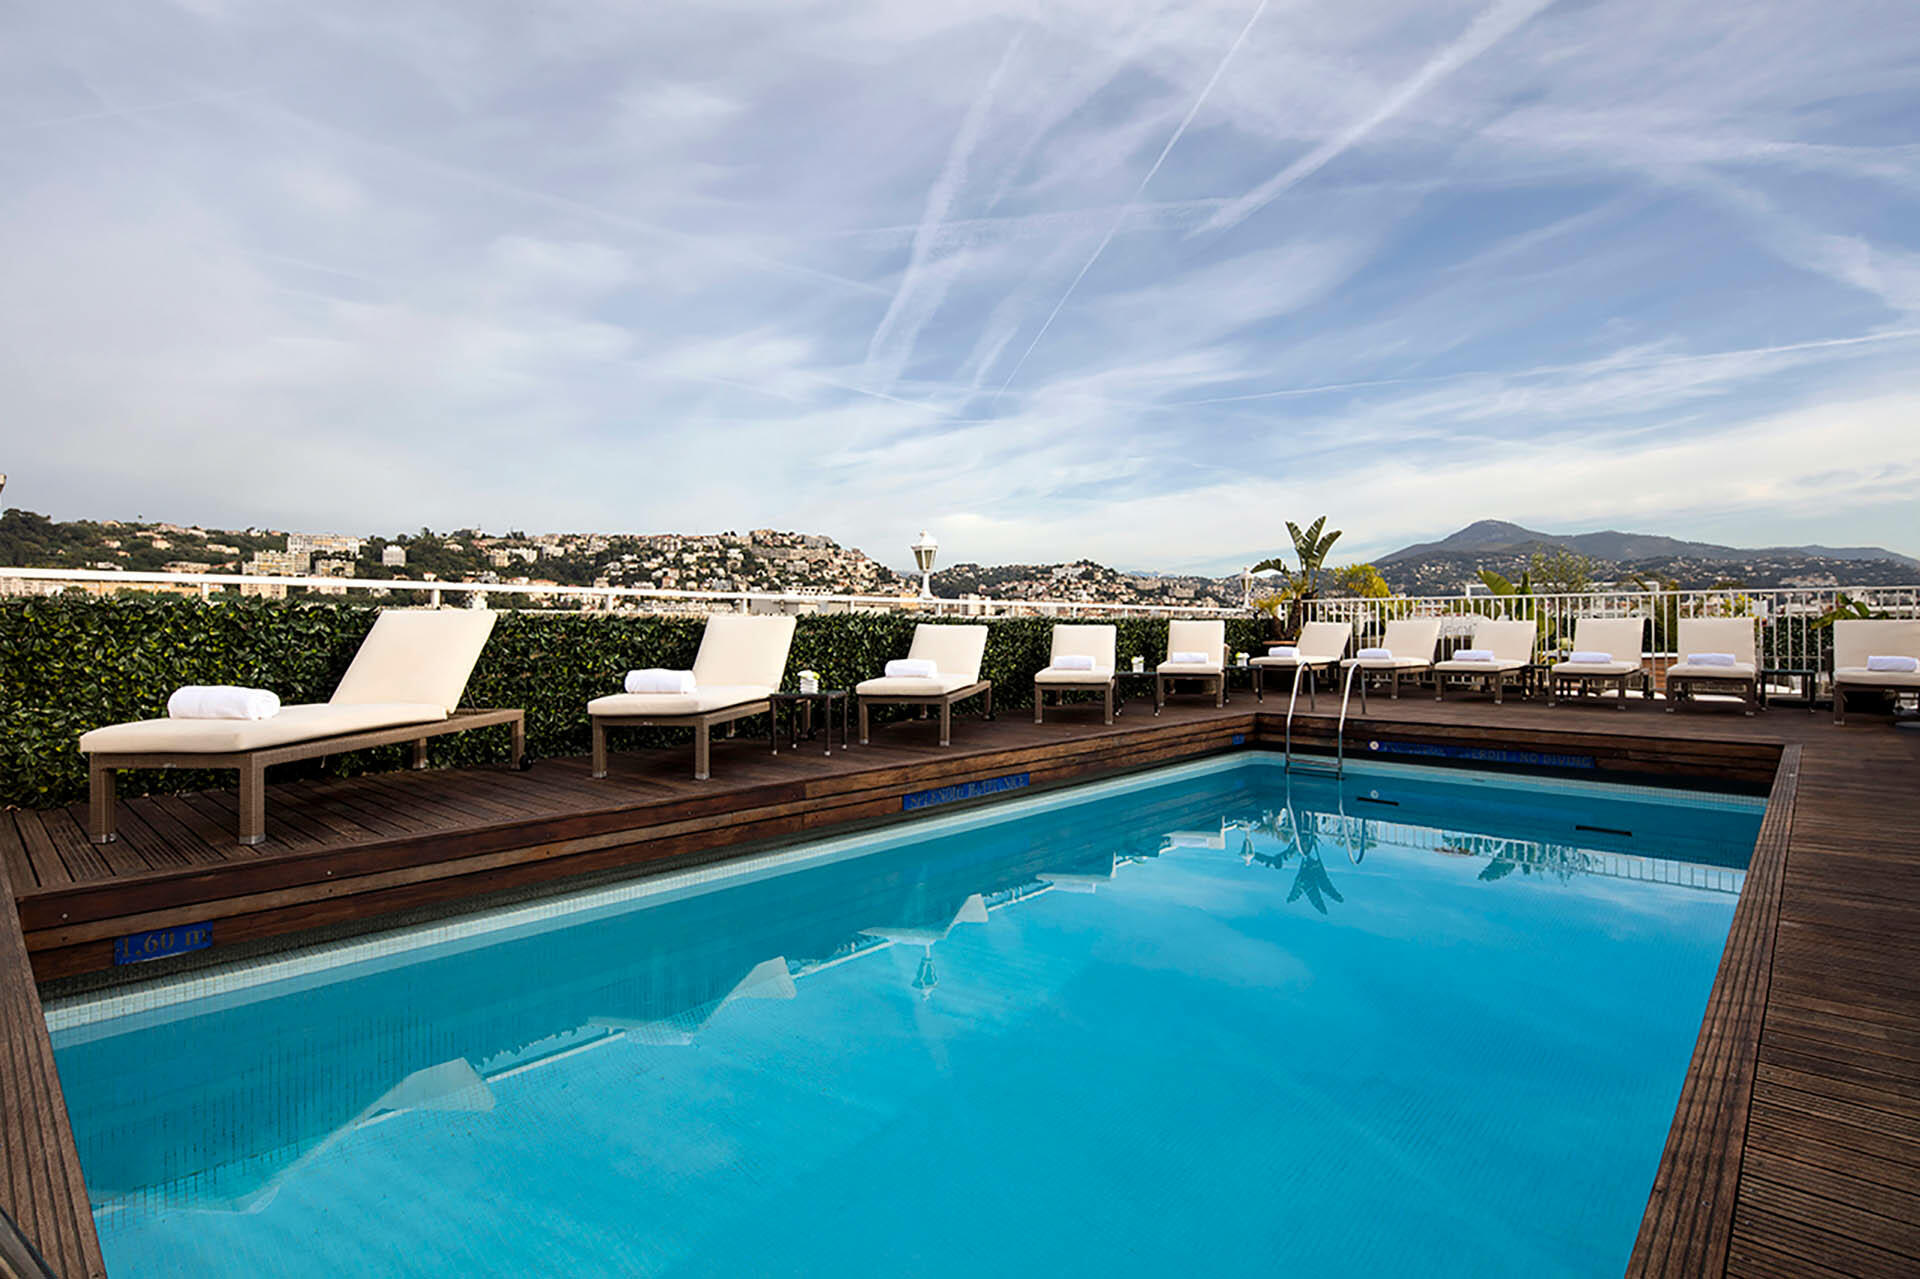 Splendid Hotel and Spa Rooftop Pool